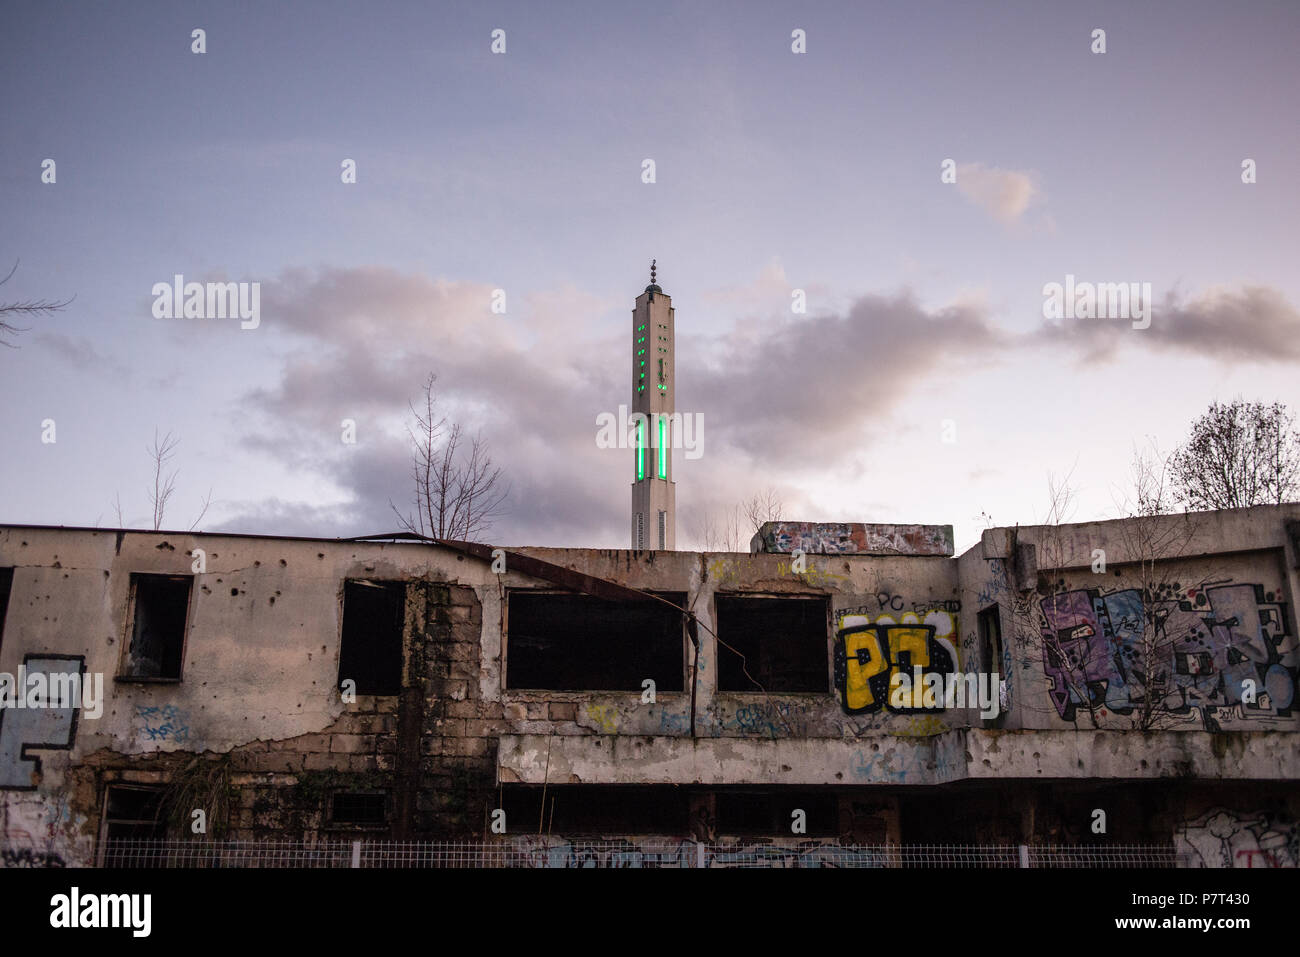 Minaret of the mosque behind the building damaged by artillery shelling of the Bosnian Civil War, Sarajevo, Bosnia and Herzegovina Stock Photo